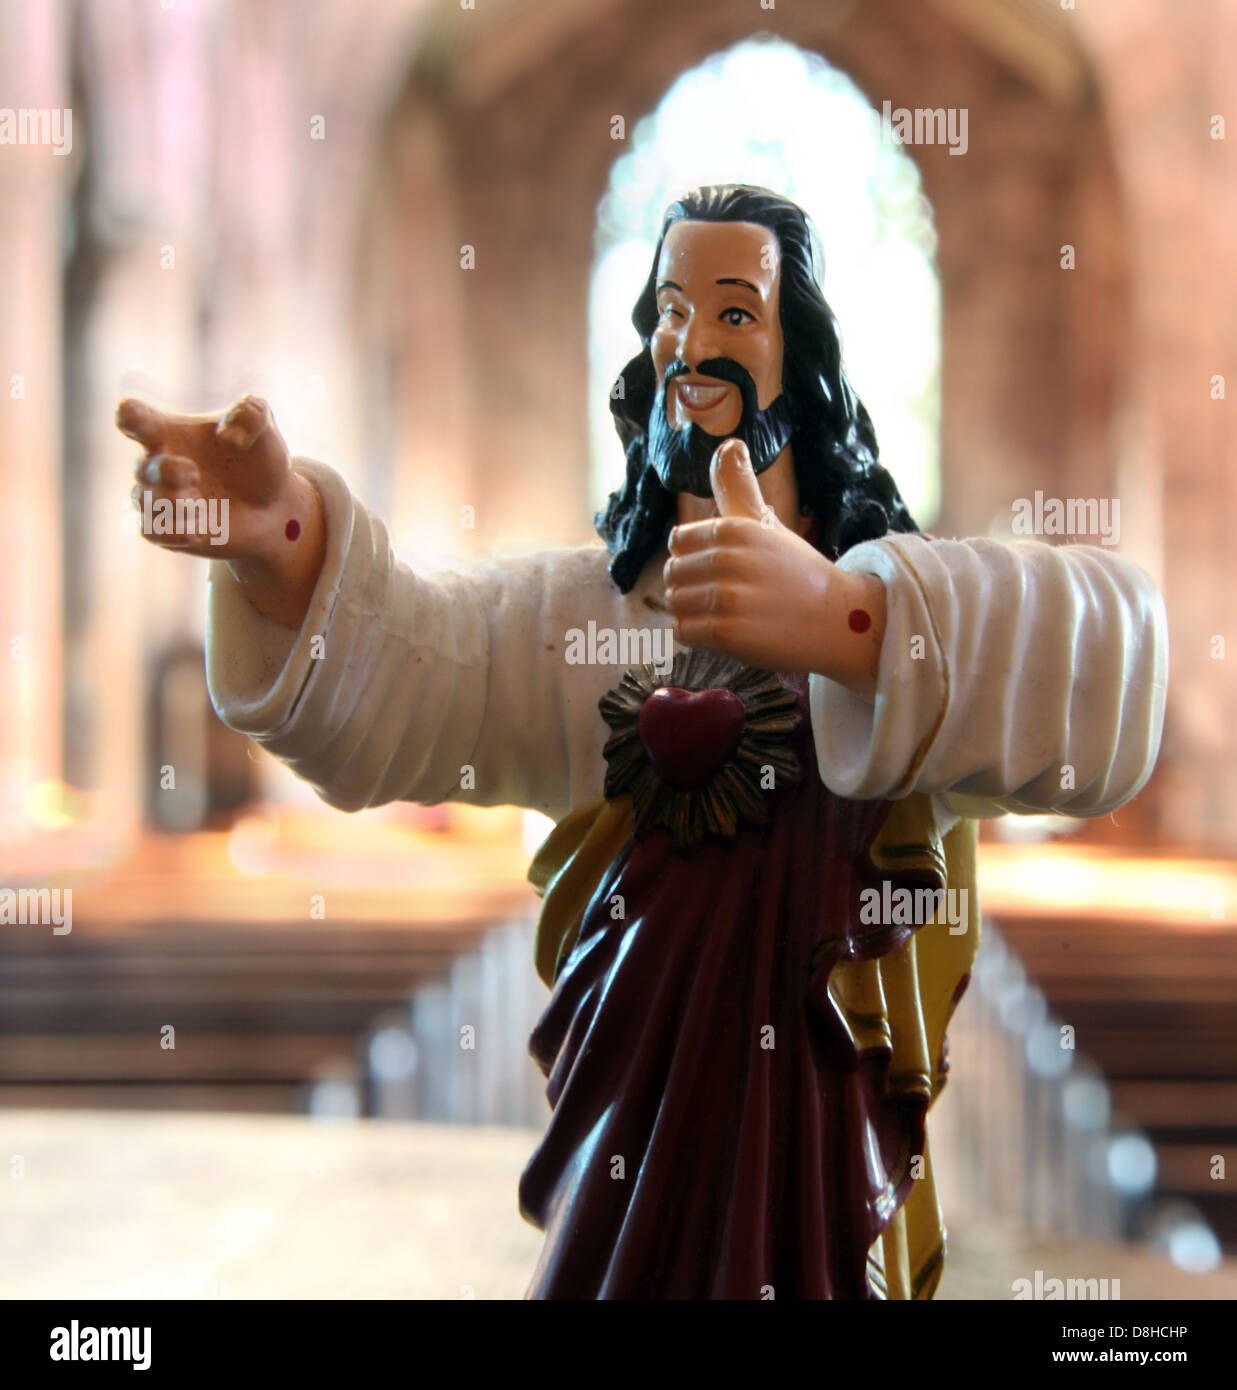 Buddy,Christ,is,a,parody,religious,icon,in,the,film,In,the,film,he,is,part,of,a,campaign,Catholicism,Wow!,to,renew,the,image,of,(and,interest,in),the,Catholic,Church.,Viewing,the,crucifix,image,as,wholly,depressing,the,Church,led,by,Cardinal,Glick,George,Carlin,decides,to,retire,it,catholics,gotonysmith,humour,humorous,humor,comedy,funny,fun,joke,jokes,taboo,taboos,religion,religion,religious,blasphemy,buddychrist,Jesus,Saviour,prophet,icon,iconic,Buy Pictures of,Buy Images Of